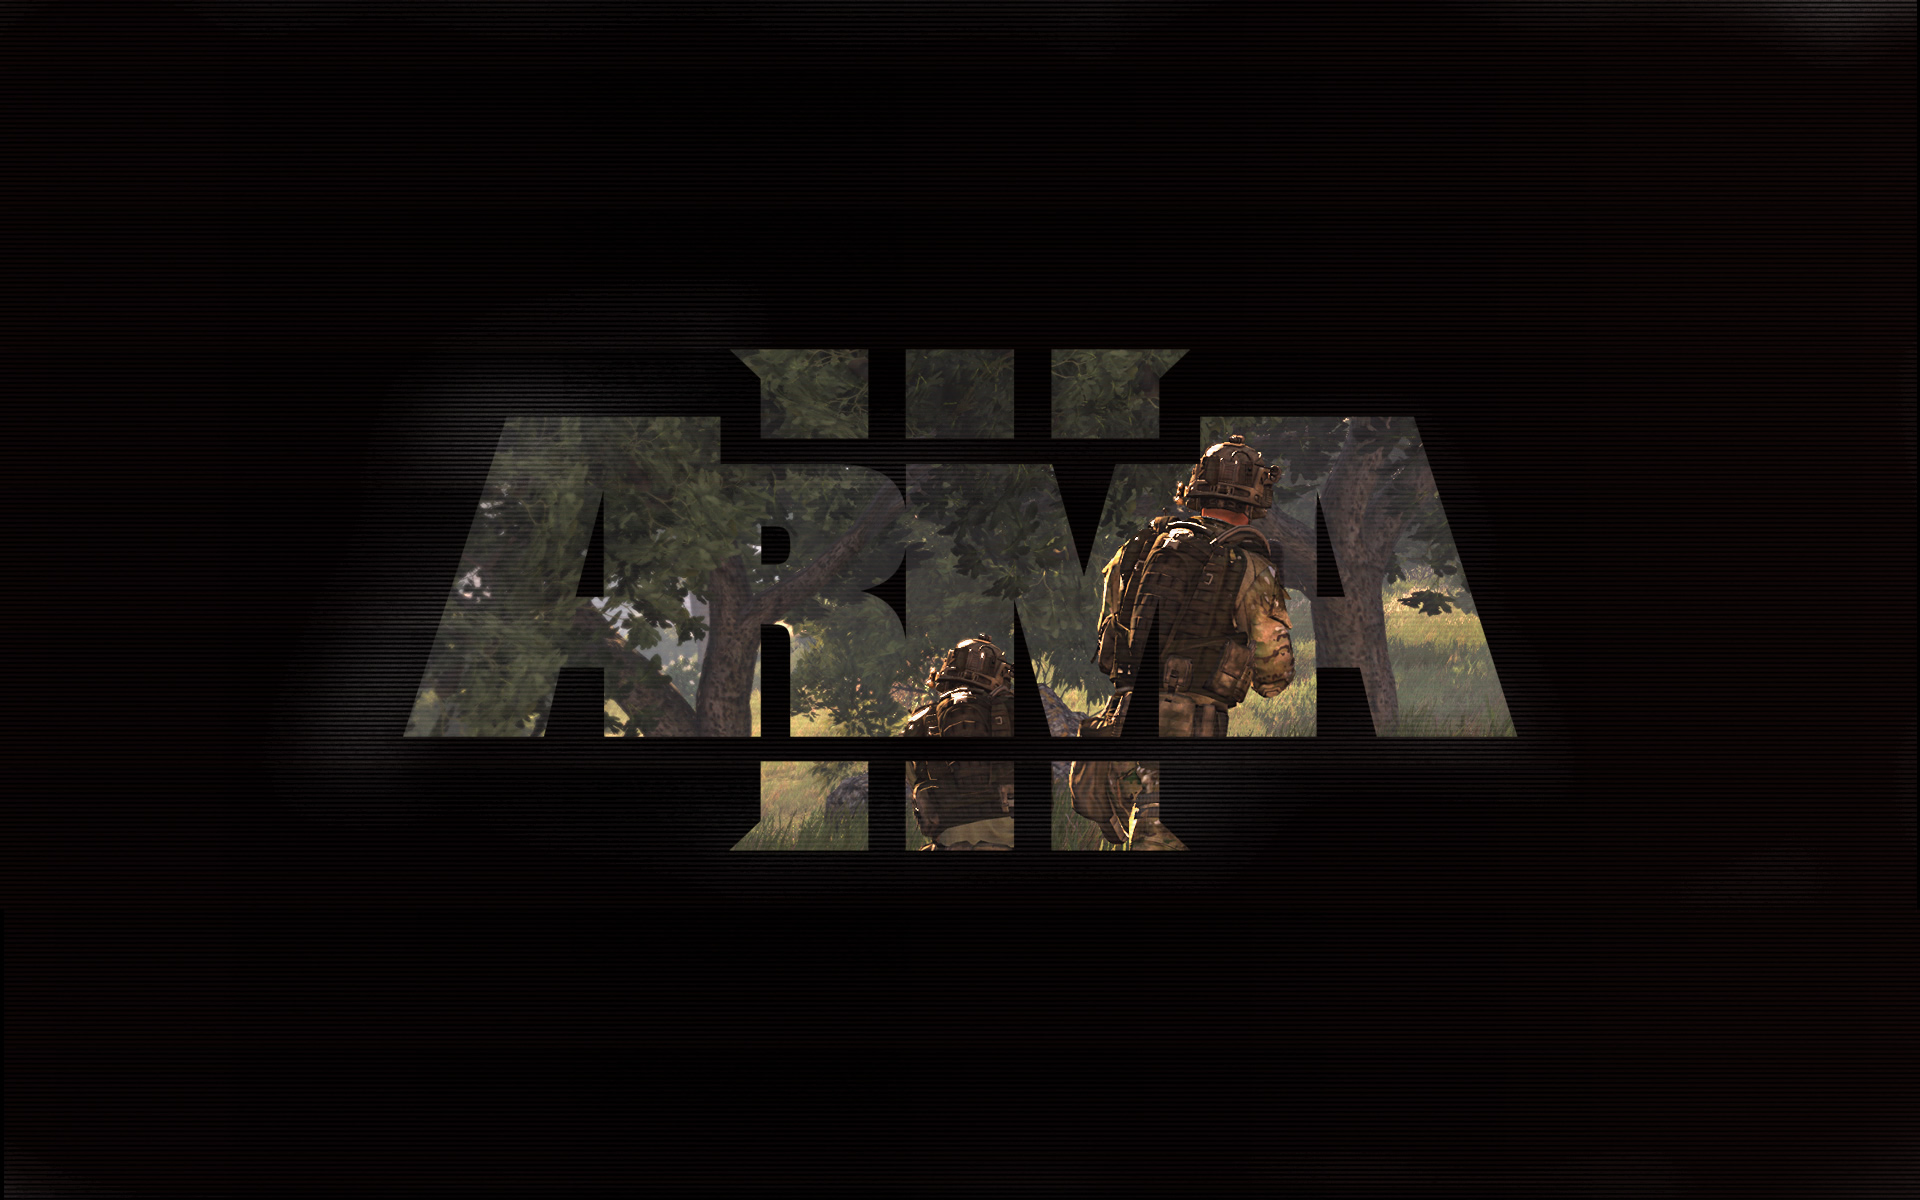 Cool arma 3 wallpaper 28766 1920x1200 px Hd video hd video hd video hd video